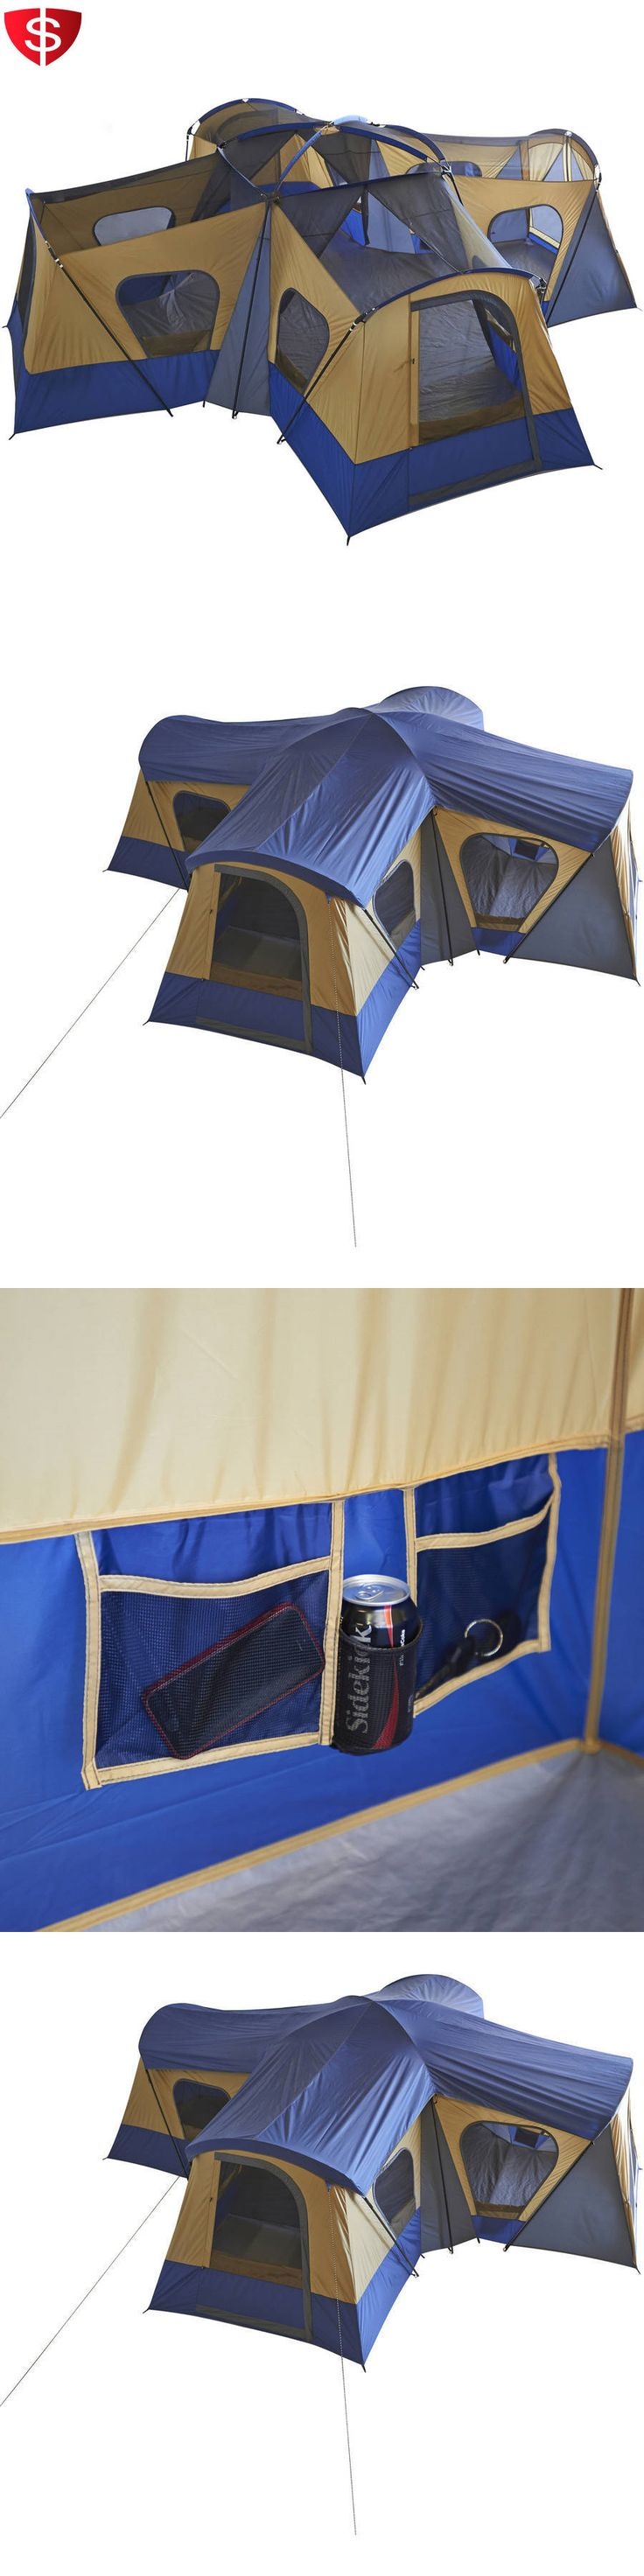 Tents 179010: 14 Person Ozark Trail 4 Room Cabin Base Camp Family Shelter Tent Outdoor Camping BUY IT NOW ONLY: $266.29